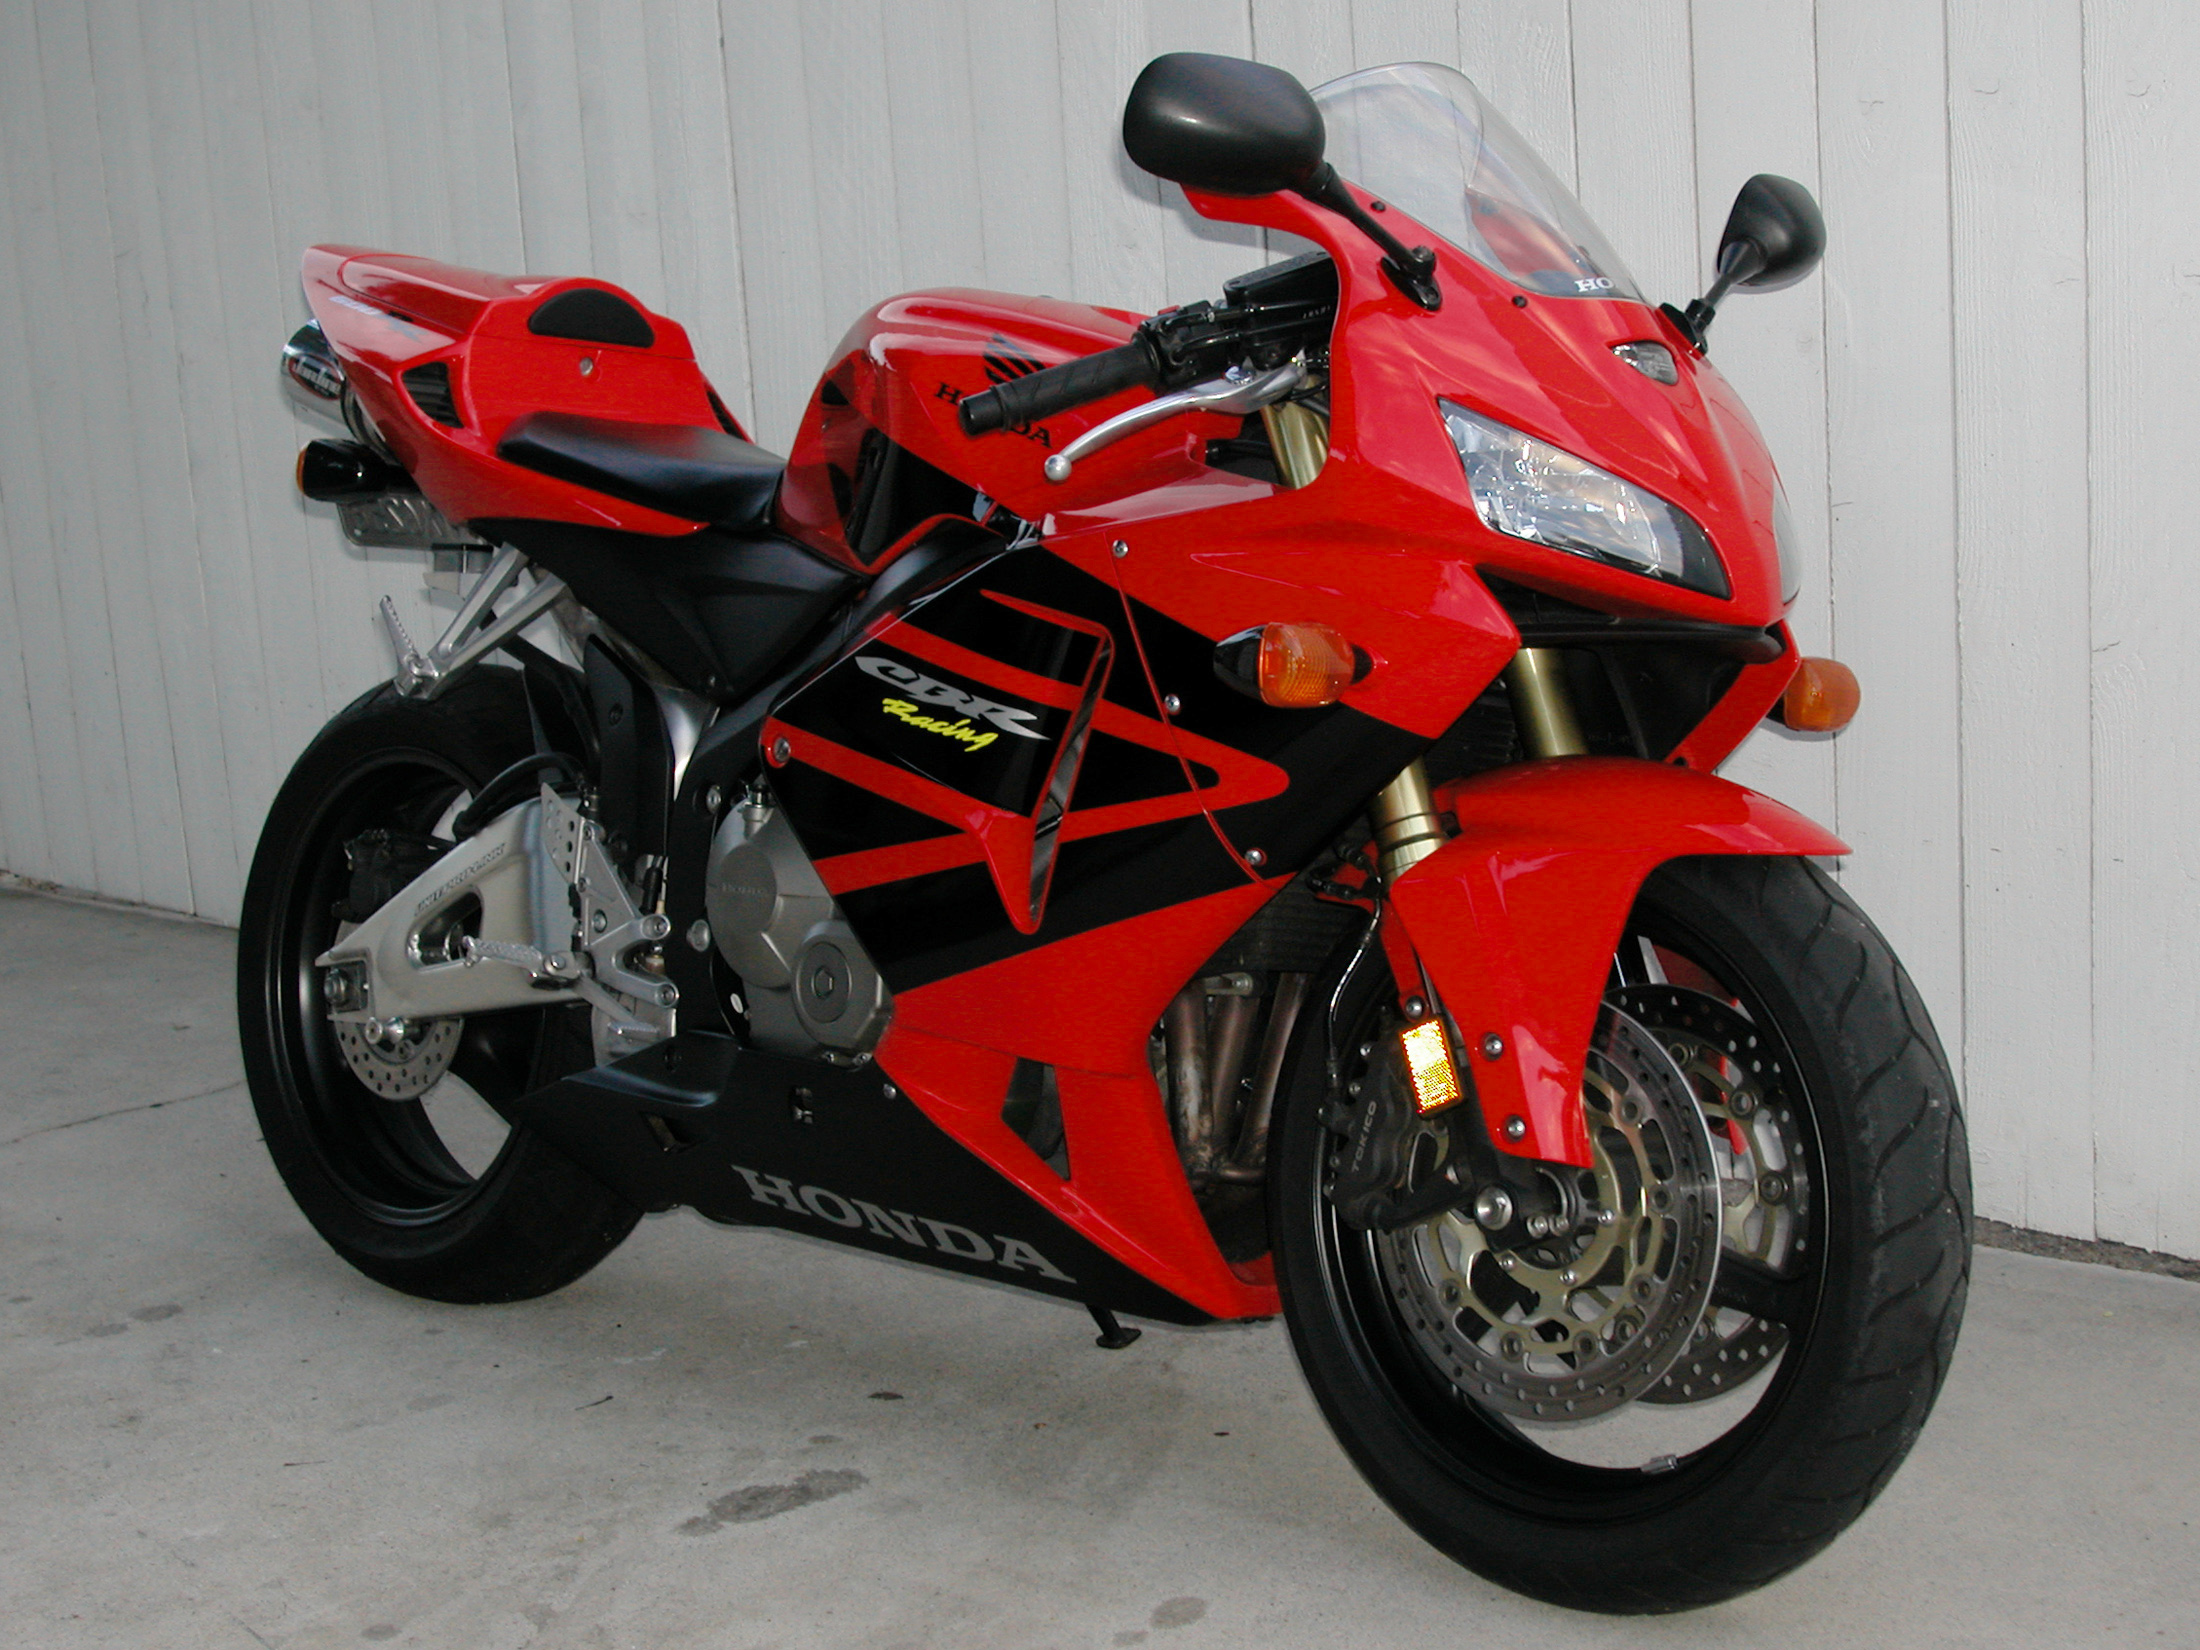 Cbr600rr The Crittenden Automotive Library